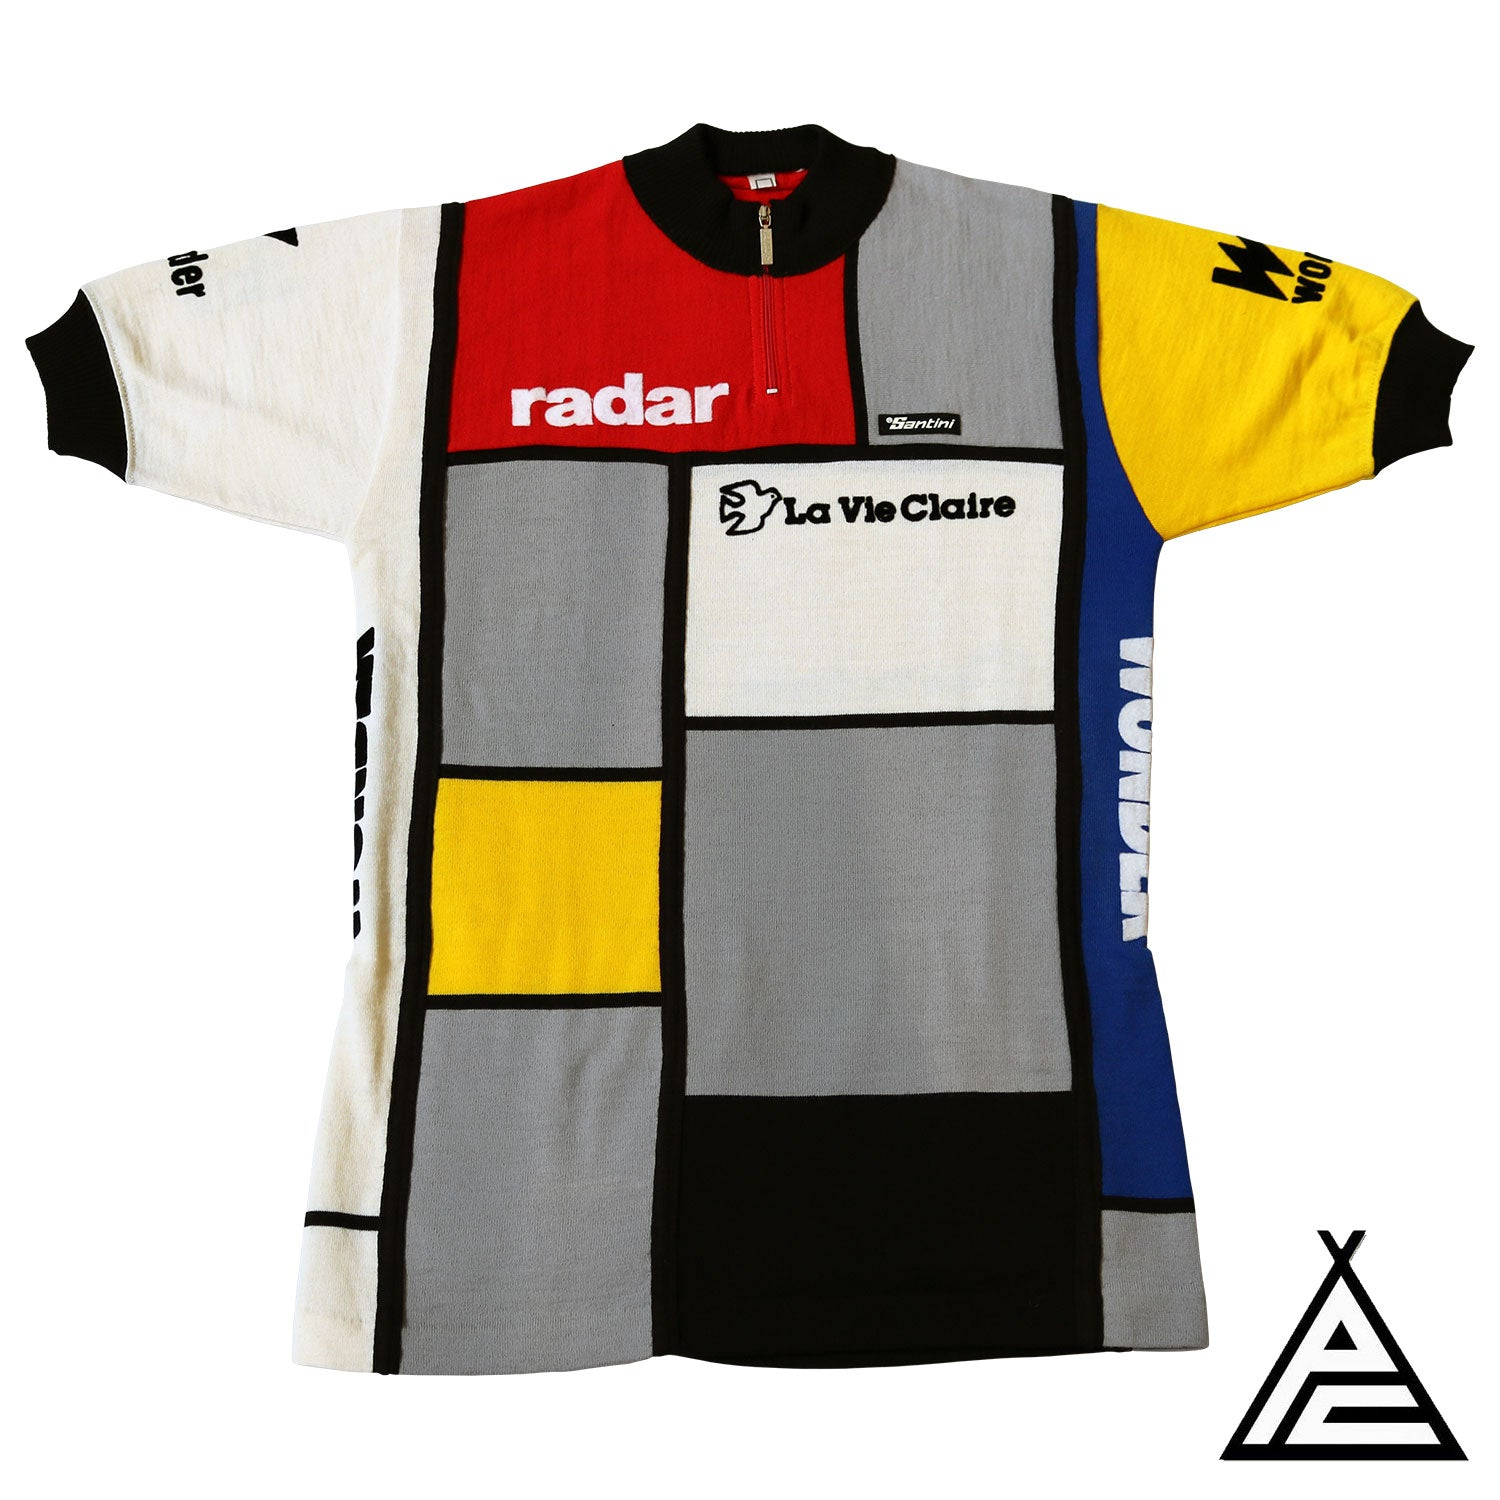 La Vie Claire Radar Wonder 1985 Wool Team Jersey by Santini ... da3a61bbc